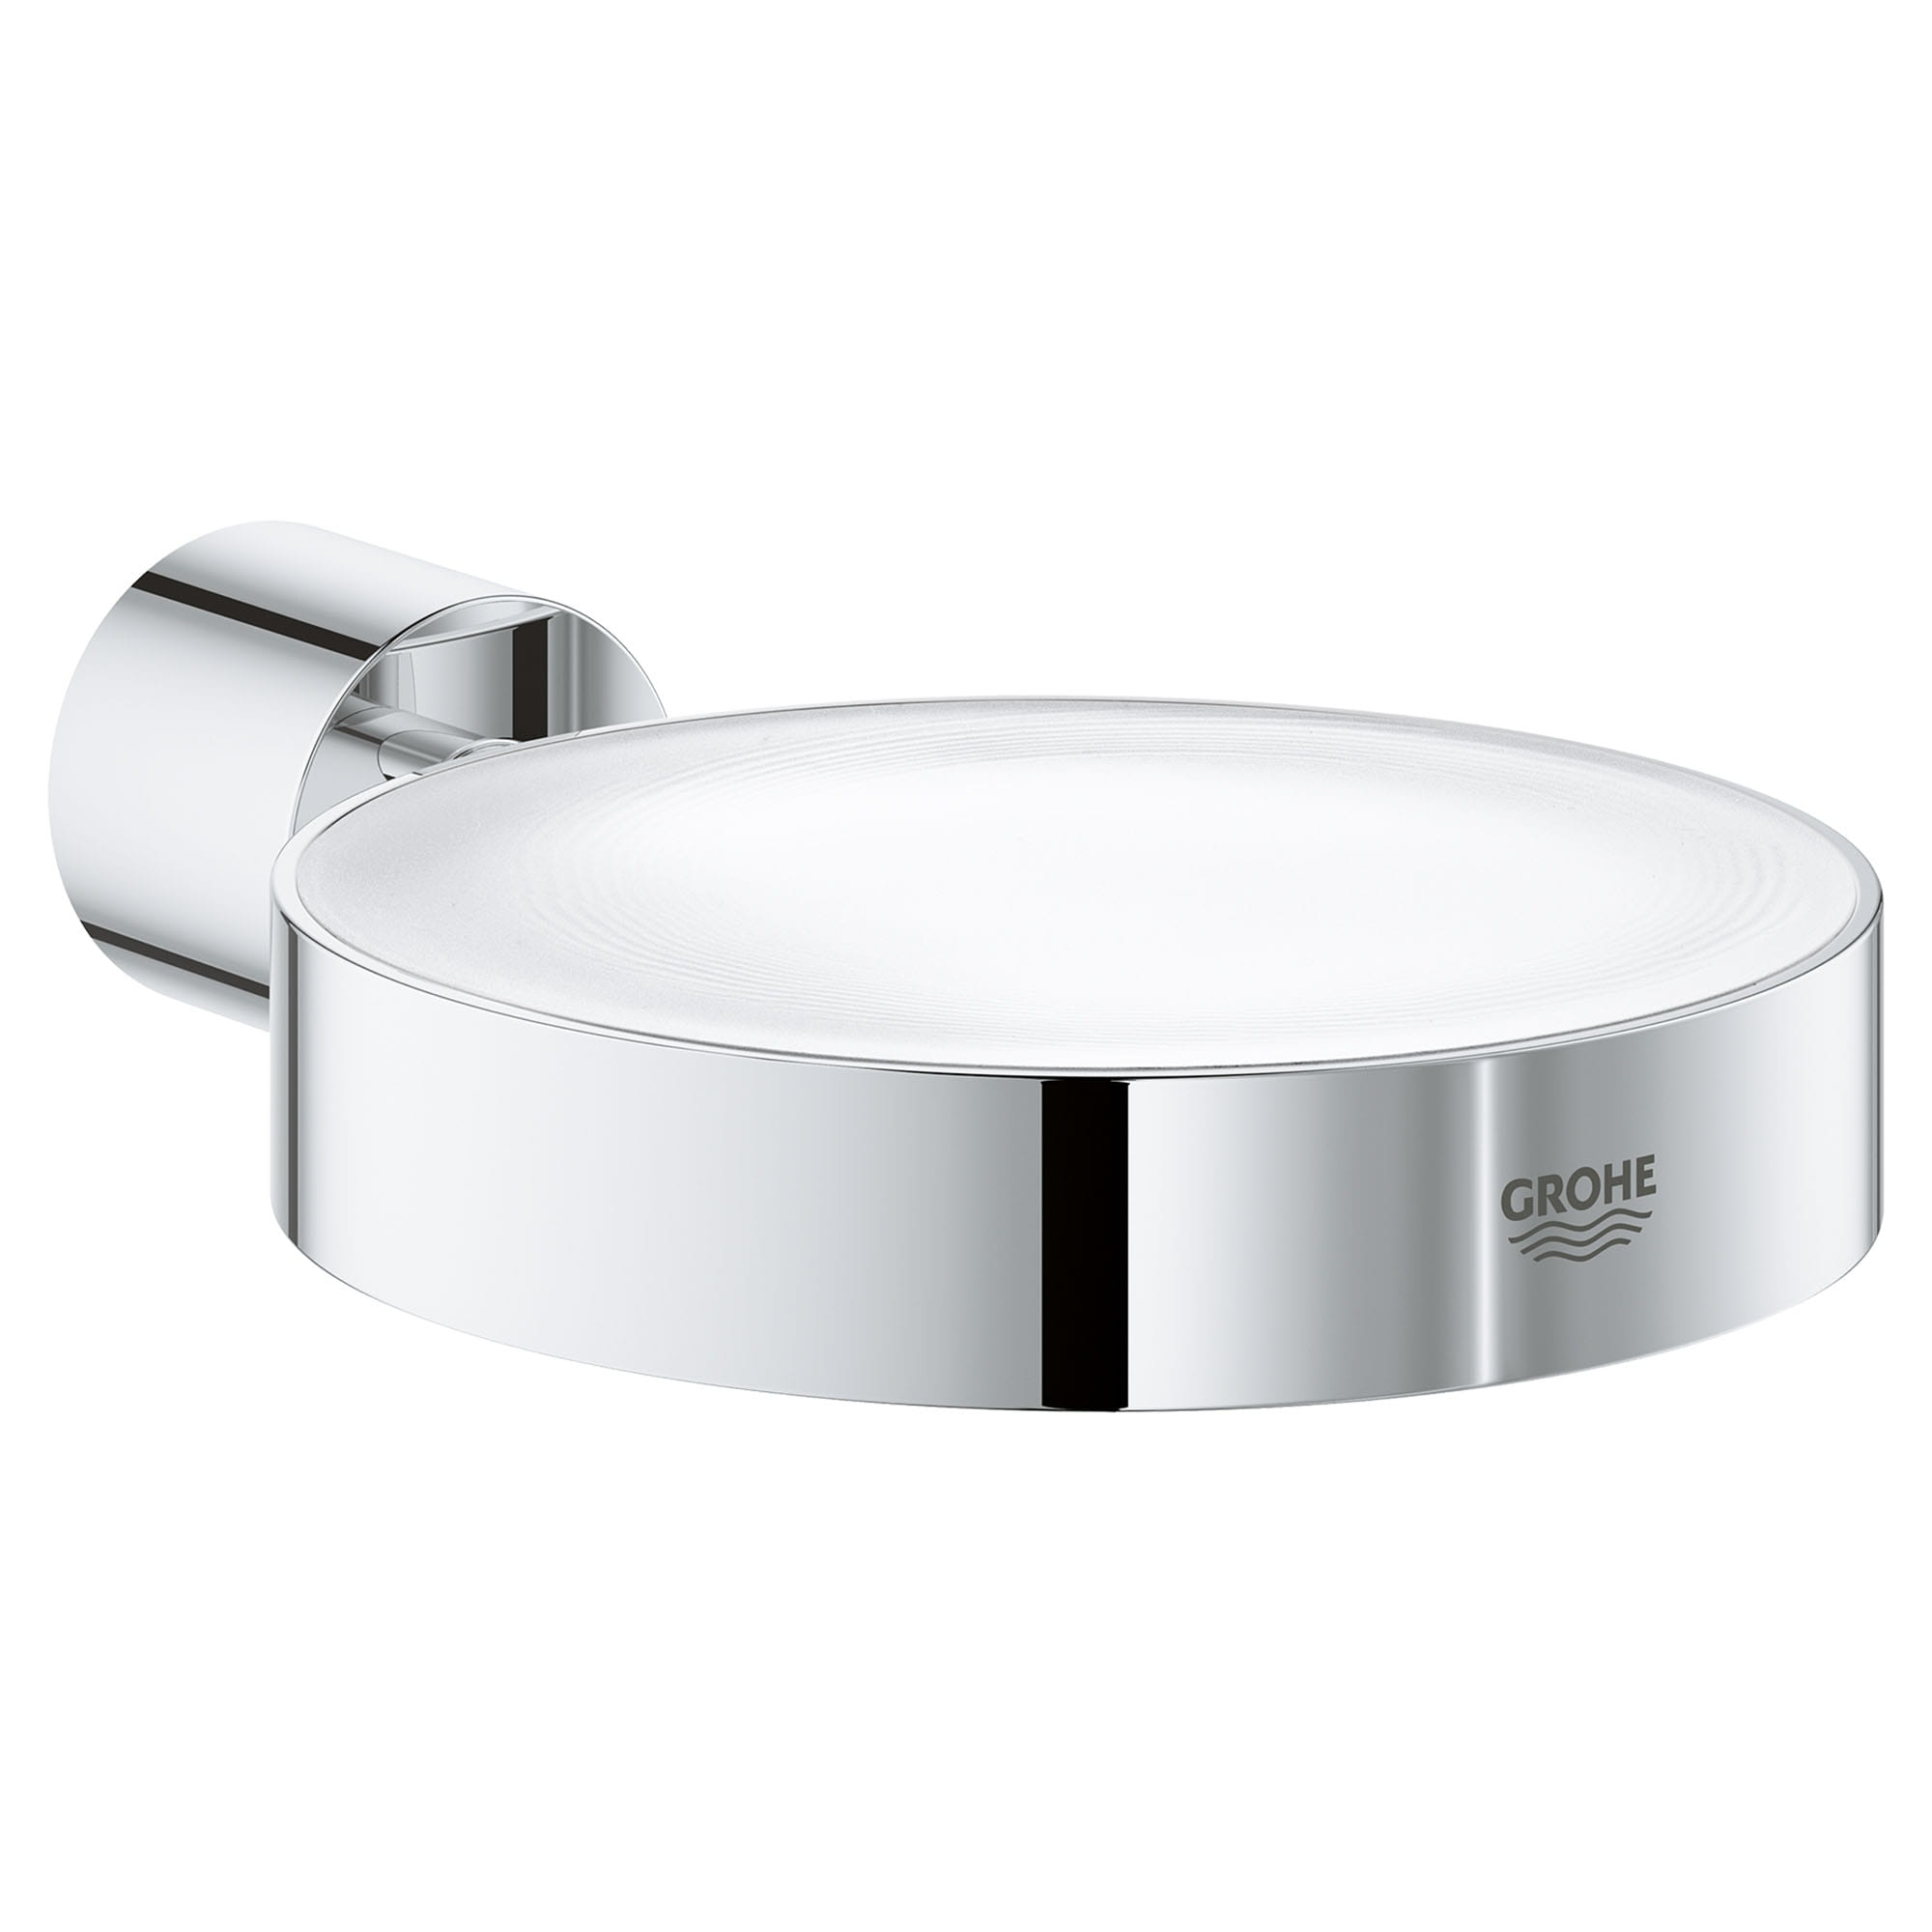 Support pour porte savon GROHE CHROME